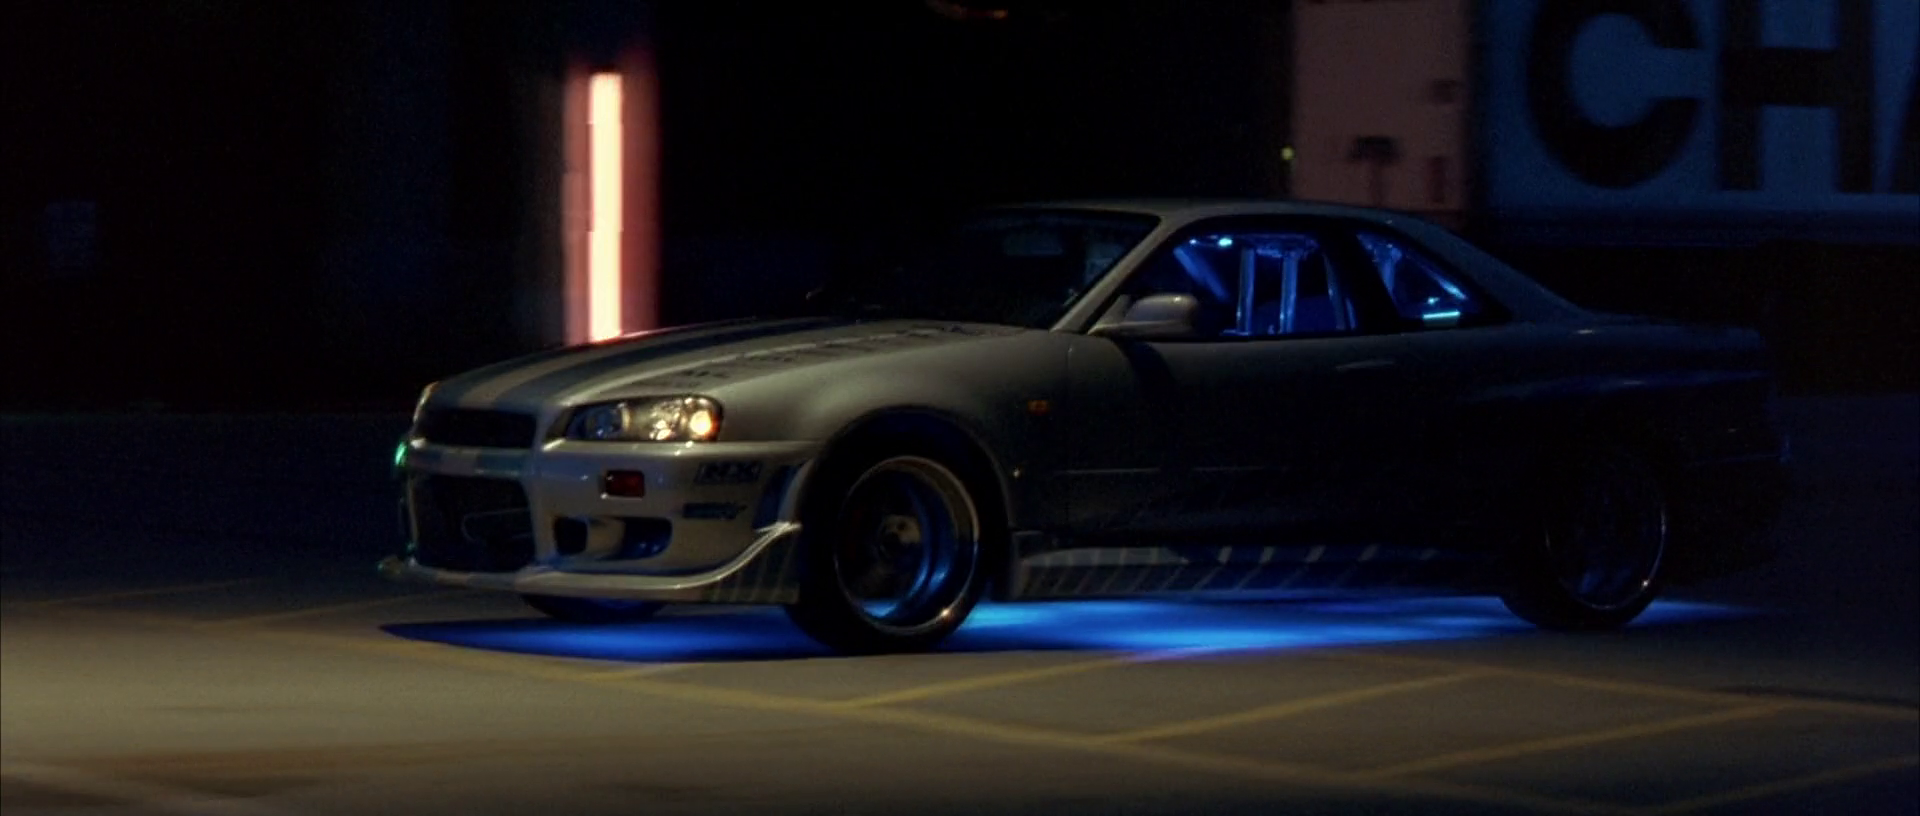 image 1999 nissan skyline side the fast and the furious wiki fandom powered by. Black Bedroom Furniture Sets. Home Design Ideas